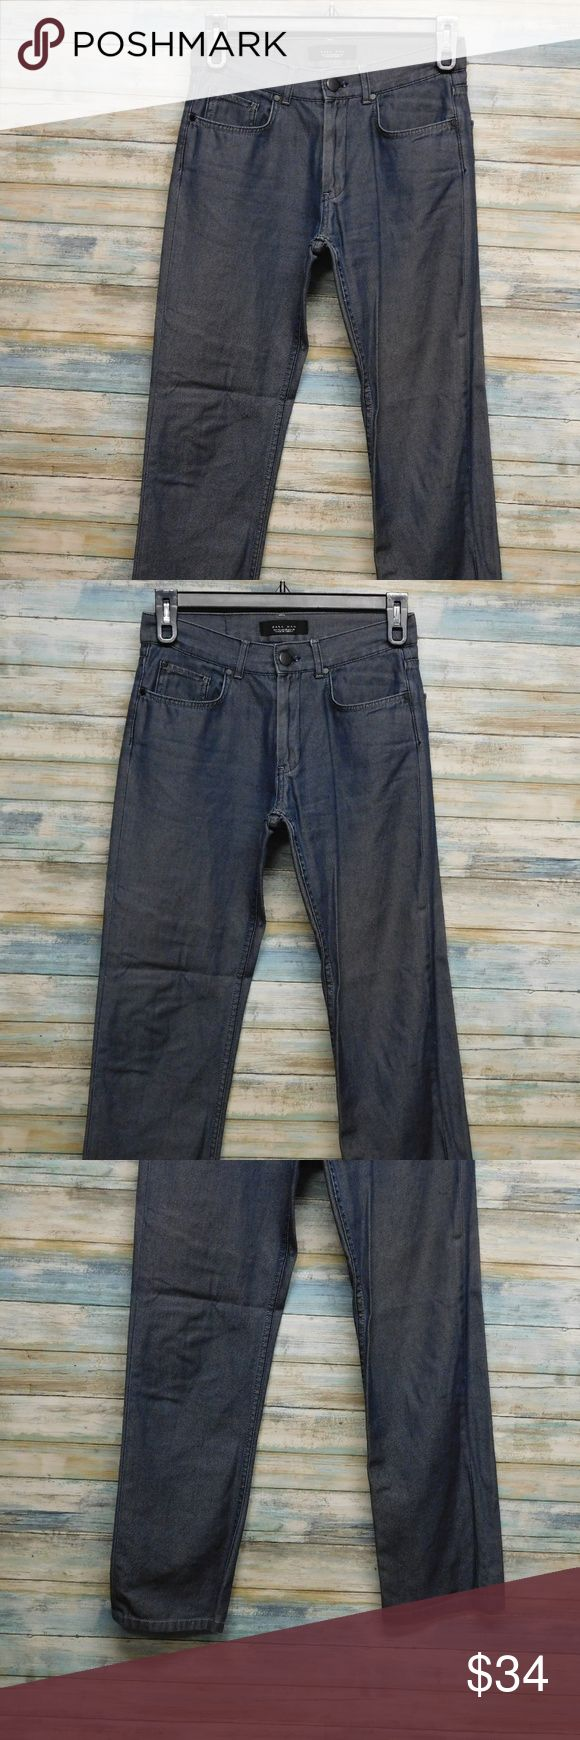 "Zara Man Slim Straight Raw Denim jeans 30 x 29 Zara Man Slim Straight Men's Raw Denim jeans 30 x 29 color: medium blue raw size 30 x 29"" inseam       actual waist measures 31"" RISE 10""   LEG OPENING LAYING FLAT 7.5""  100% cotton   IN VERY GOOD CONDITION Zara Man Jeans Slim Straight"